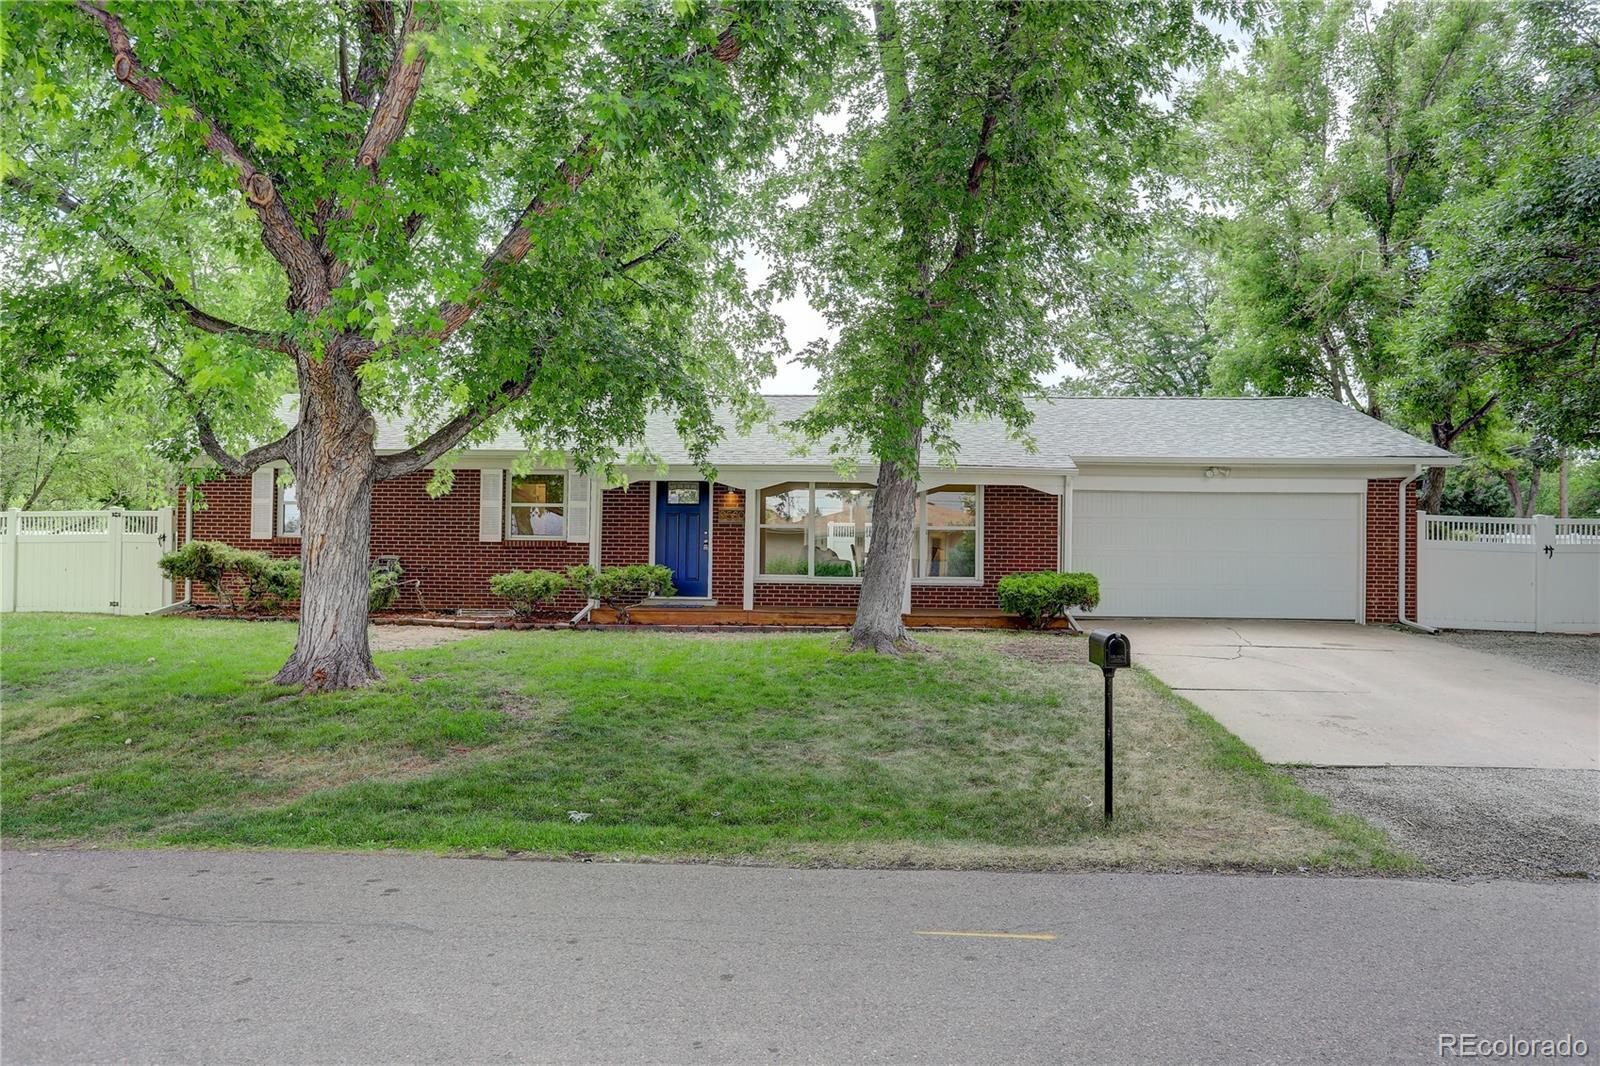 9580 W 12th Place, Lakewood, CO 80215 - #: 6963545